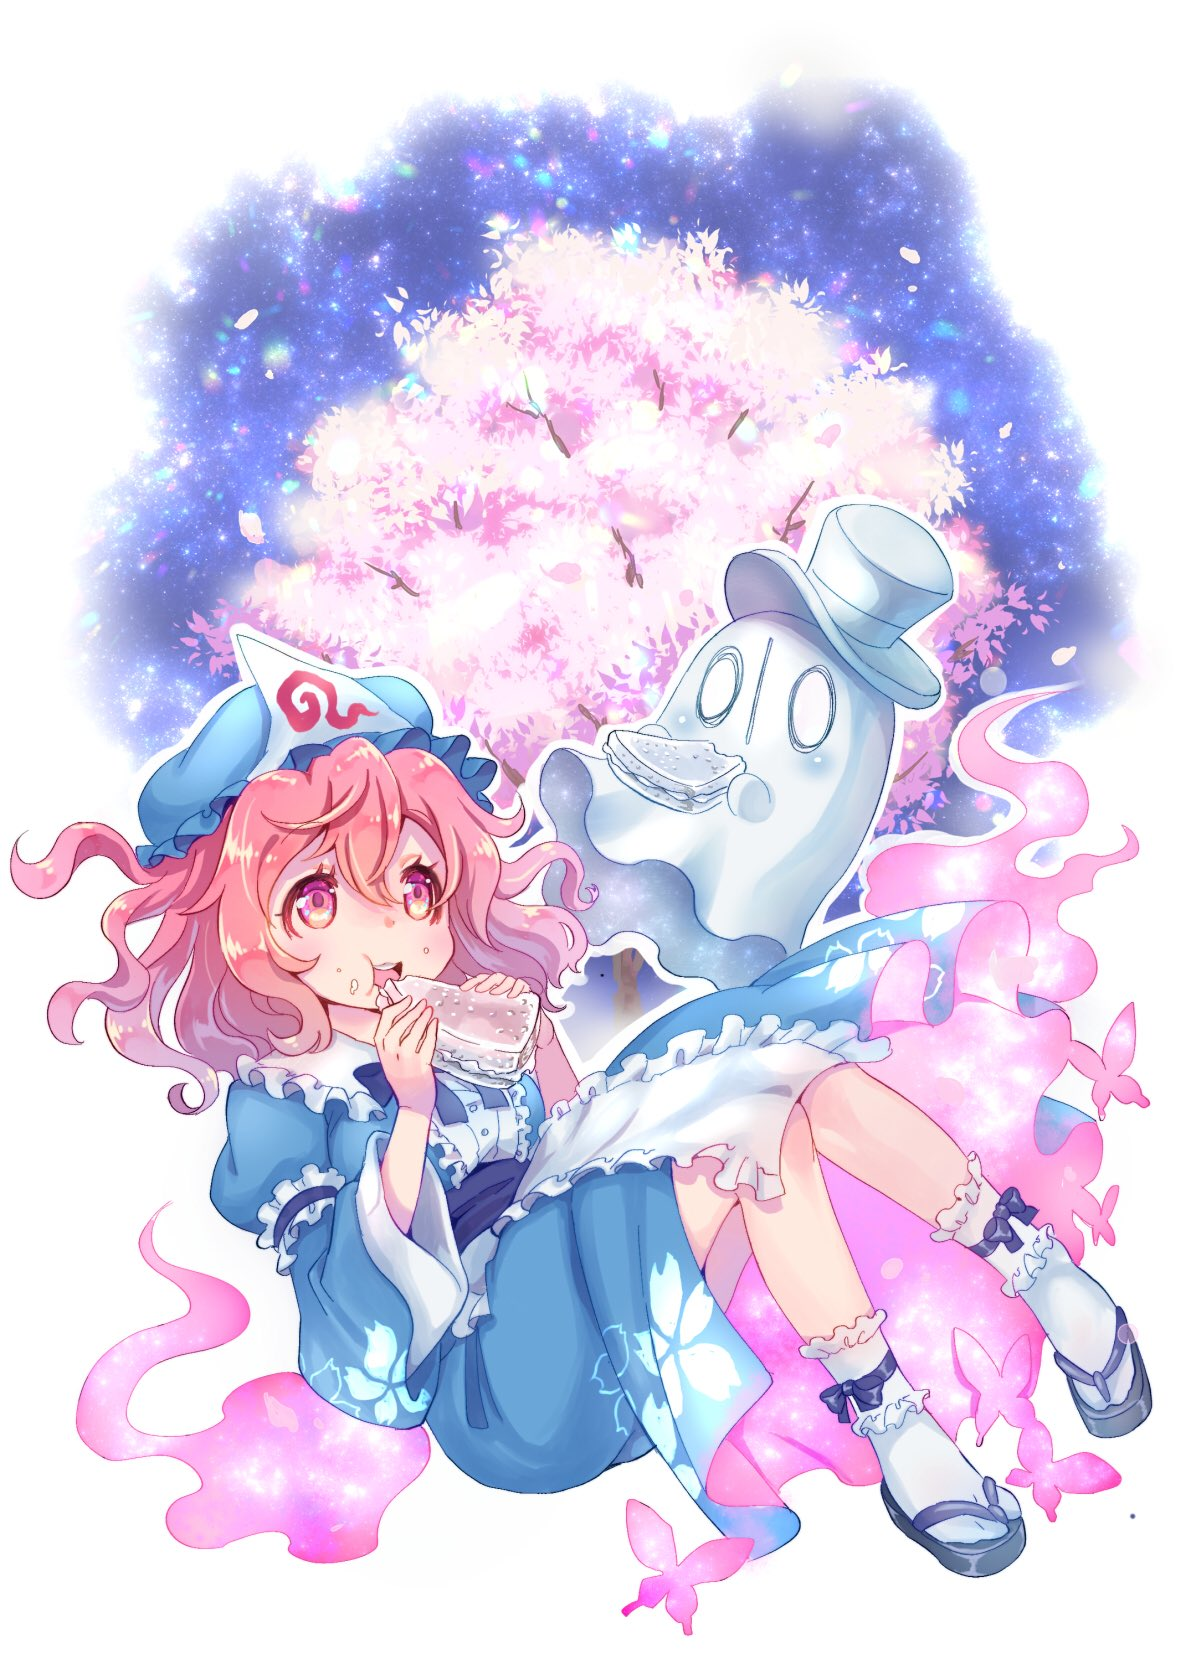 1girl blue_neckwear blush bug butterfly cherry_blossoms eating floral_print food food_in_mouth food_on_face frilled_kimono frills ghost hat highres holding holding_food insect japanese_clothes kimono mob_cap napstablook obi open_mouth pink_eyes pink_hair saigyouji_yuyuko sandwich sash short_hair top_hat touhou transparent tree triangular_headpiece undertale wavy_hair wide_sleeves yugaiga